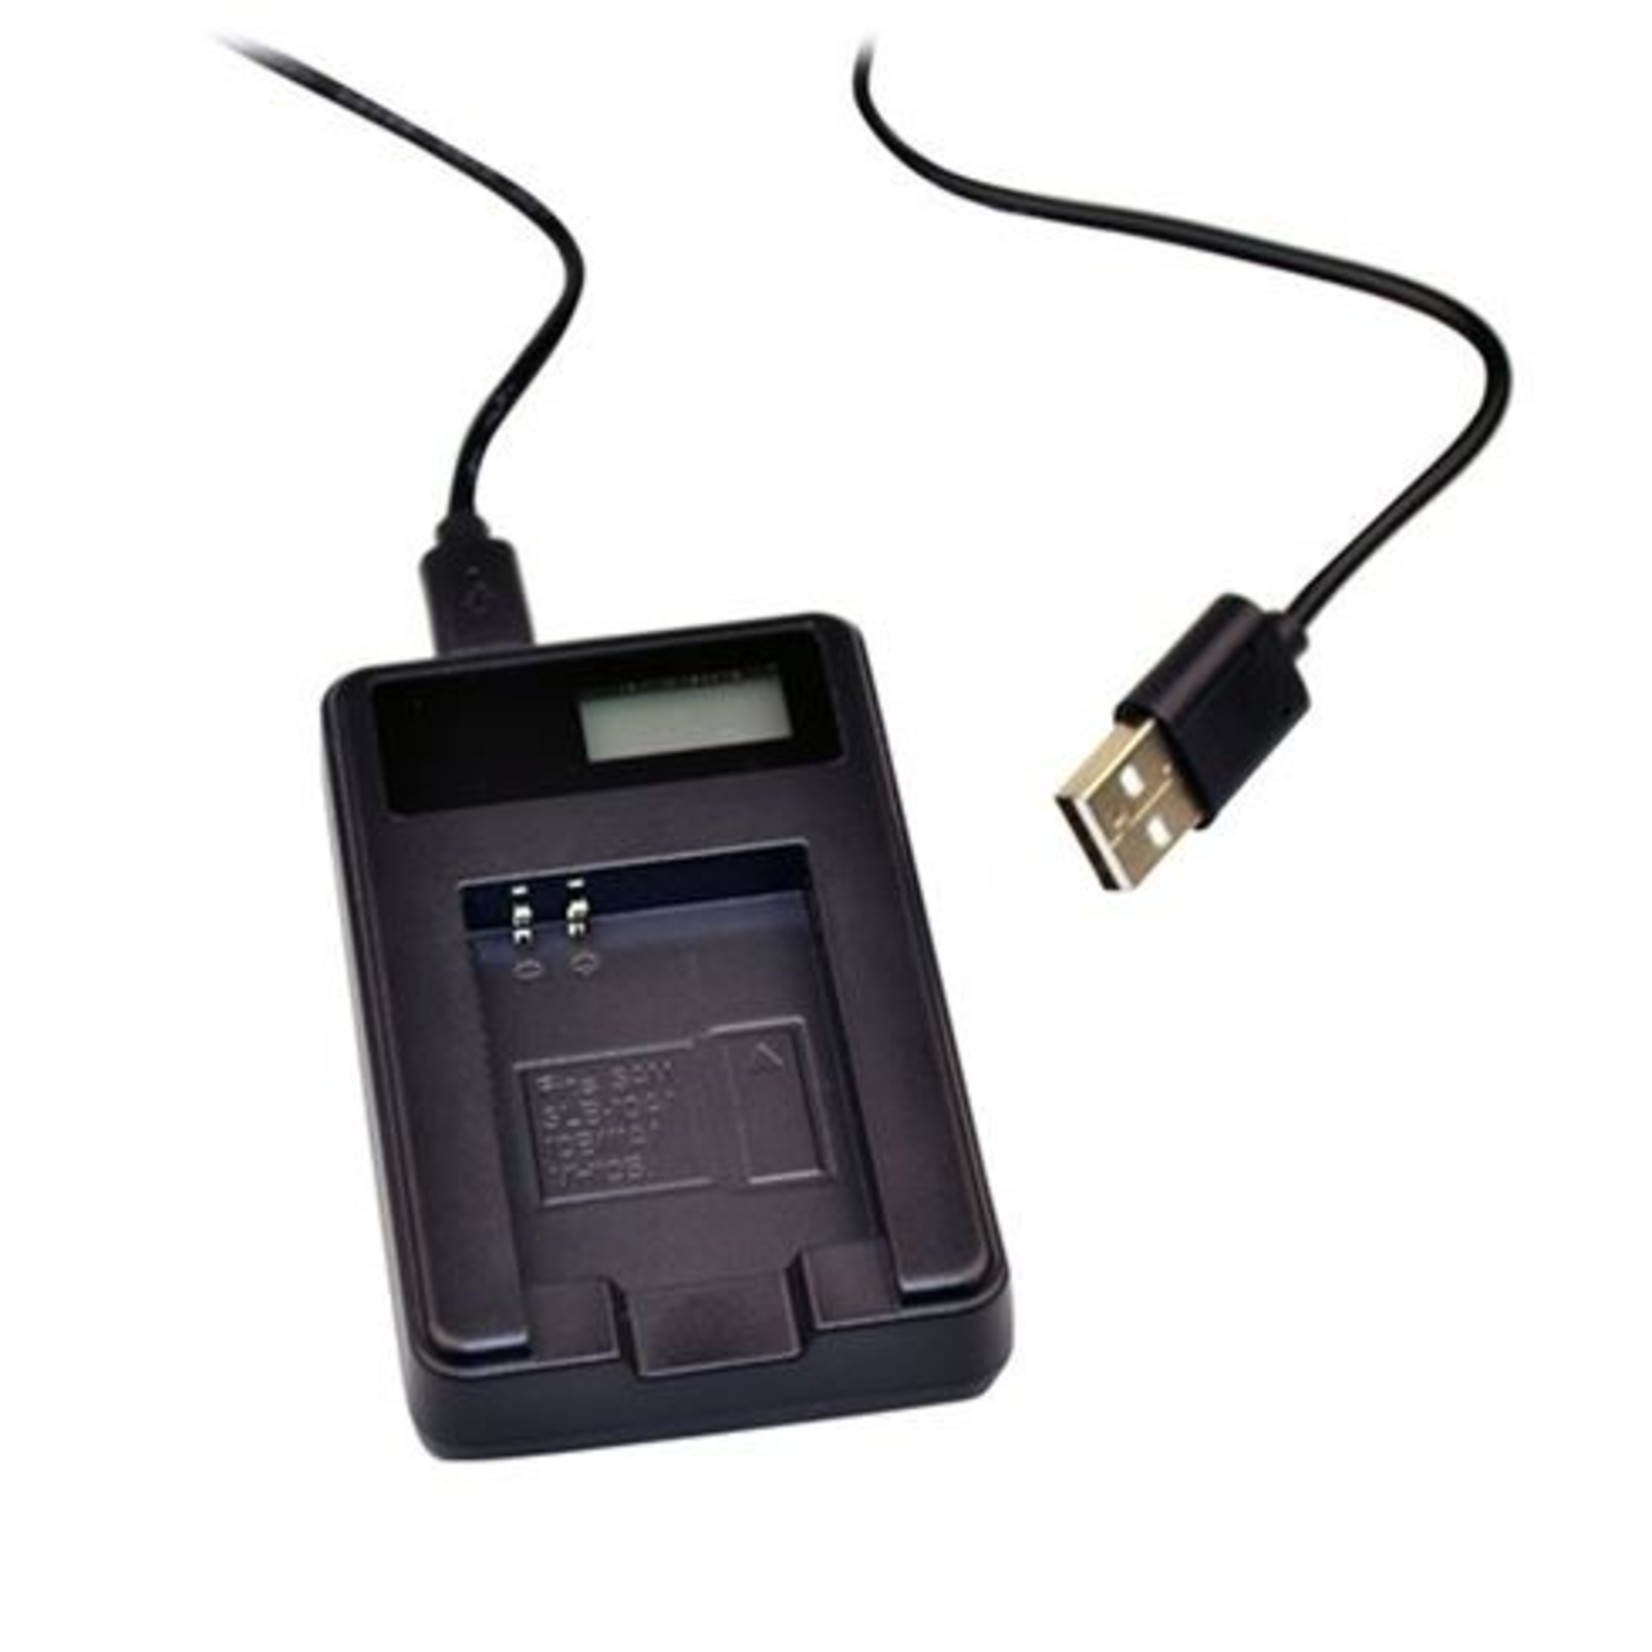 Sealife USB Battery Charger for DC2000 battery (incl. USB charge cable)